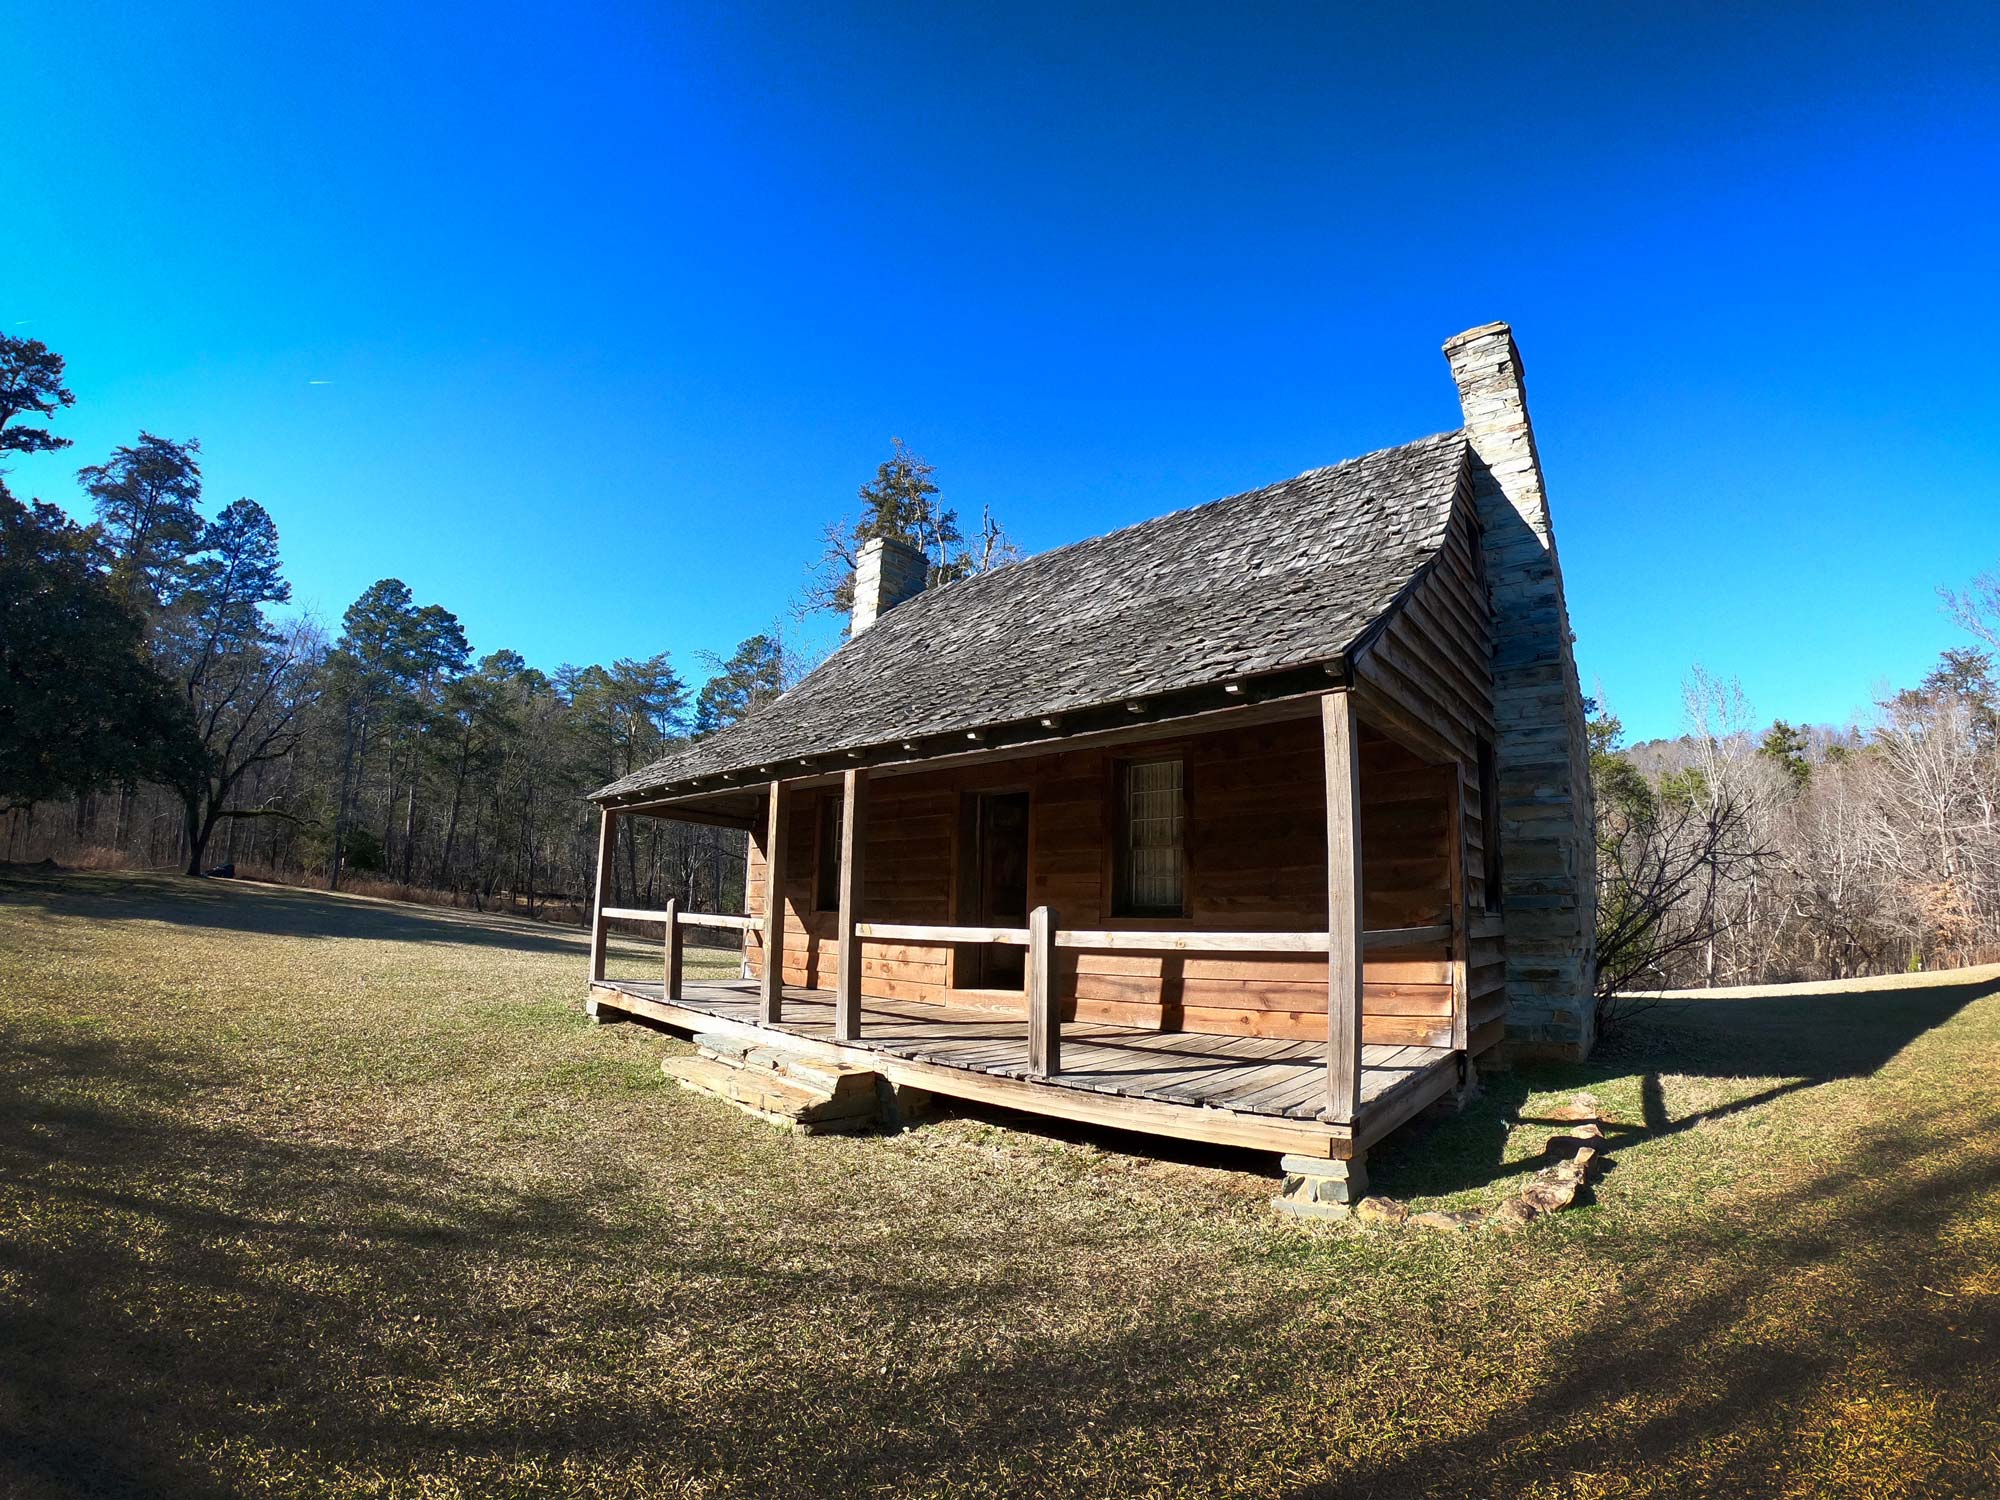 Dr Francis Kron Homestead exterior  in Morrow Mountain State Park, North Carolina